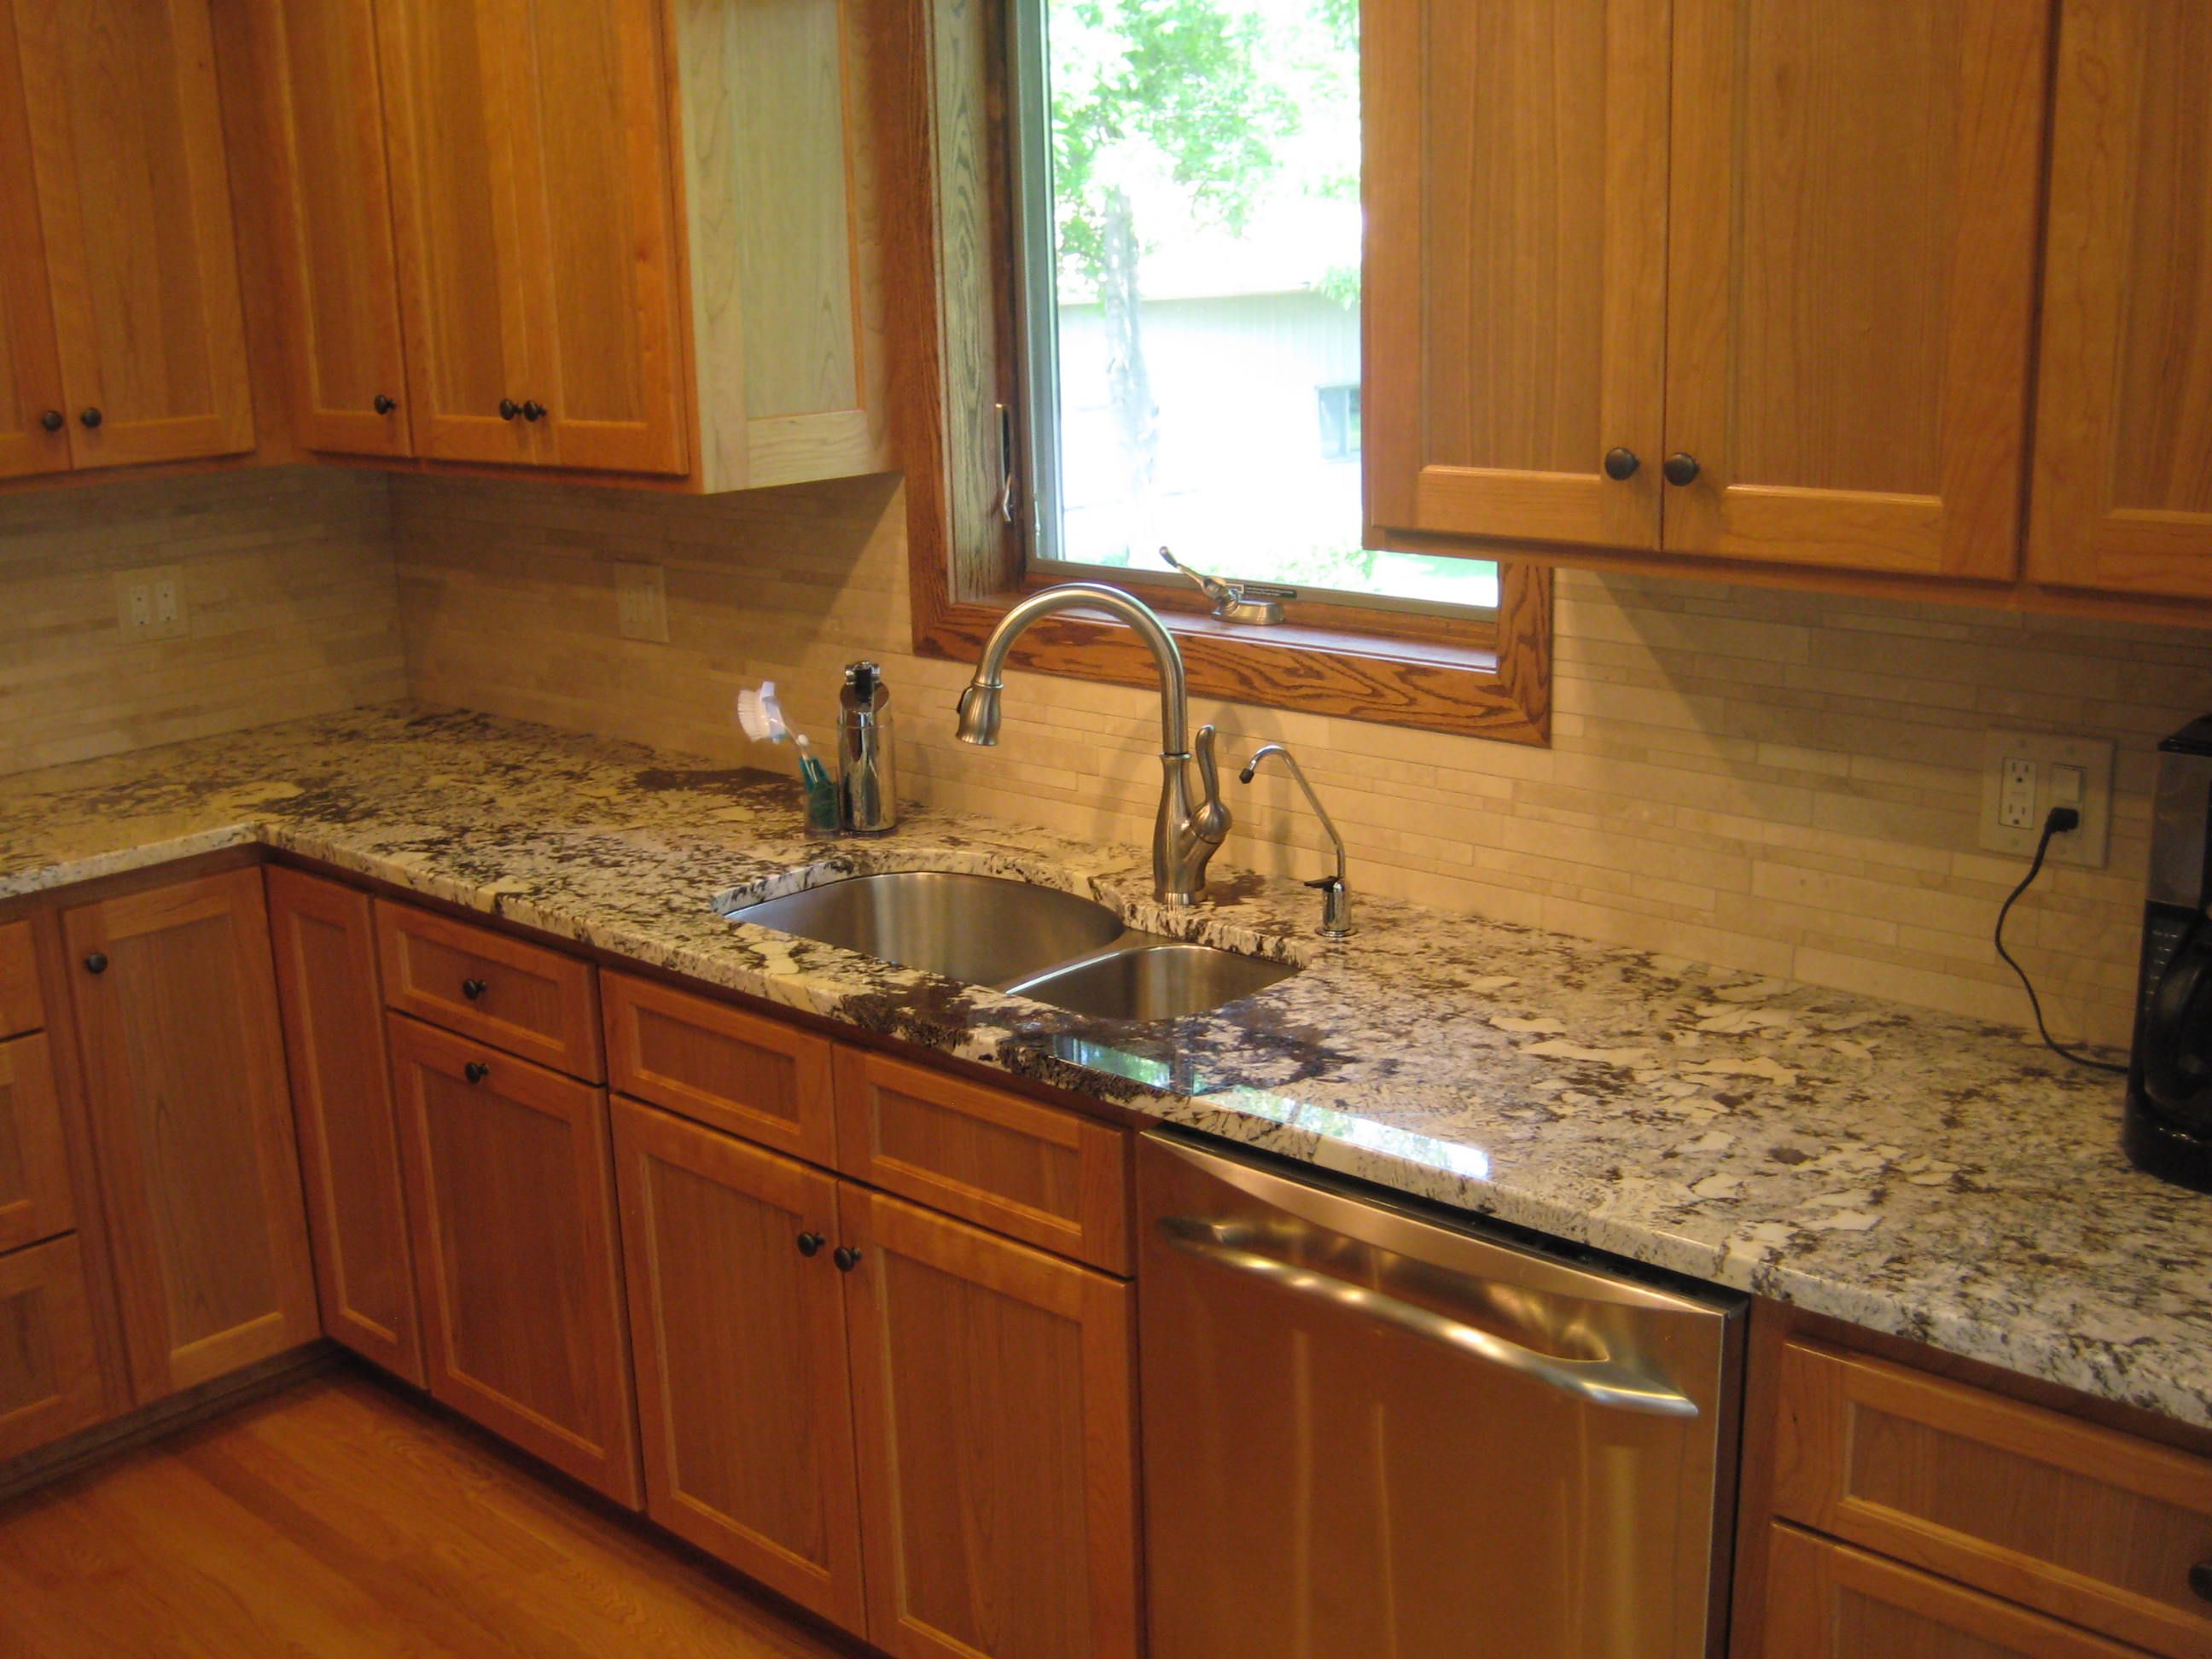 Paramount Granite Blog » 2012 » June Simple kitchen